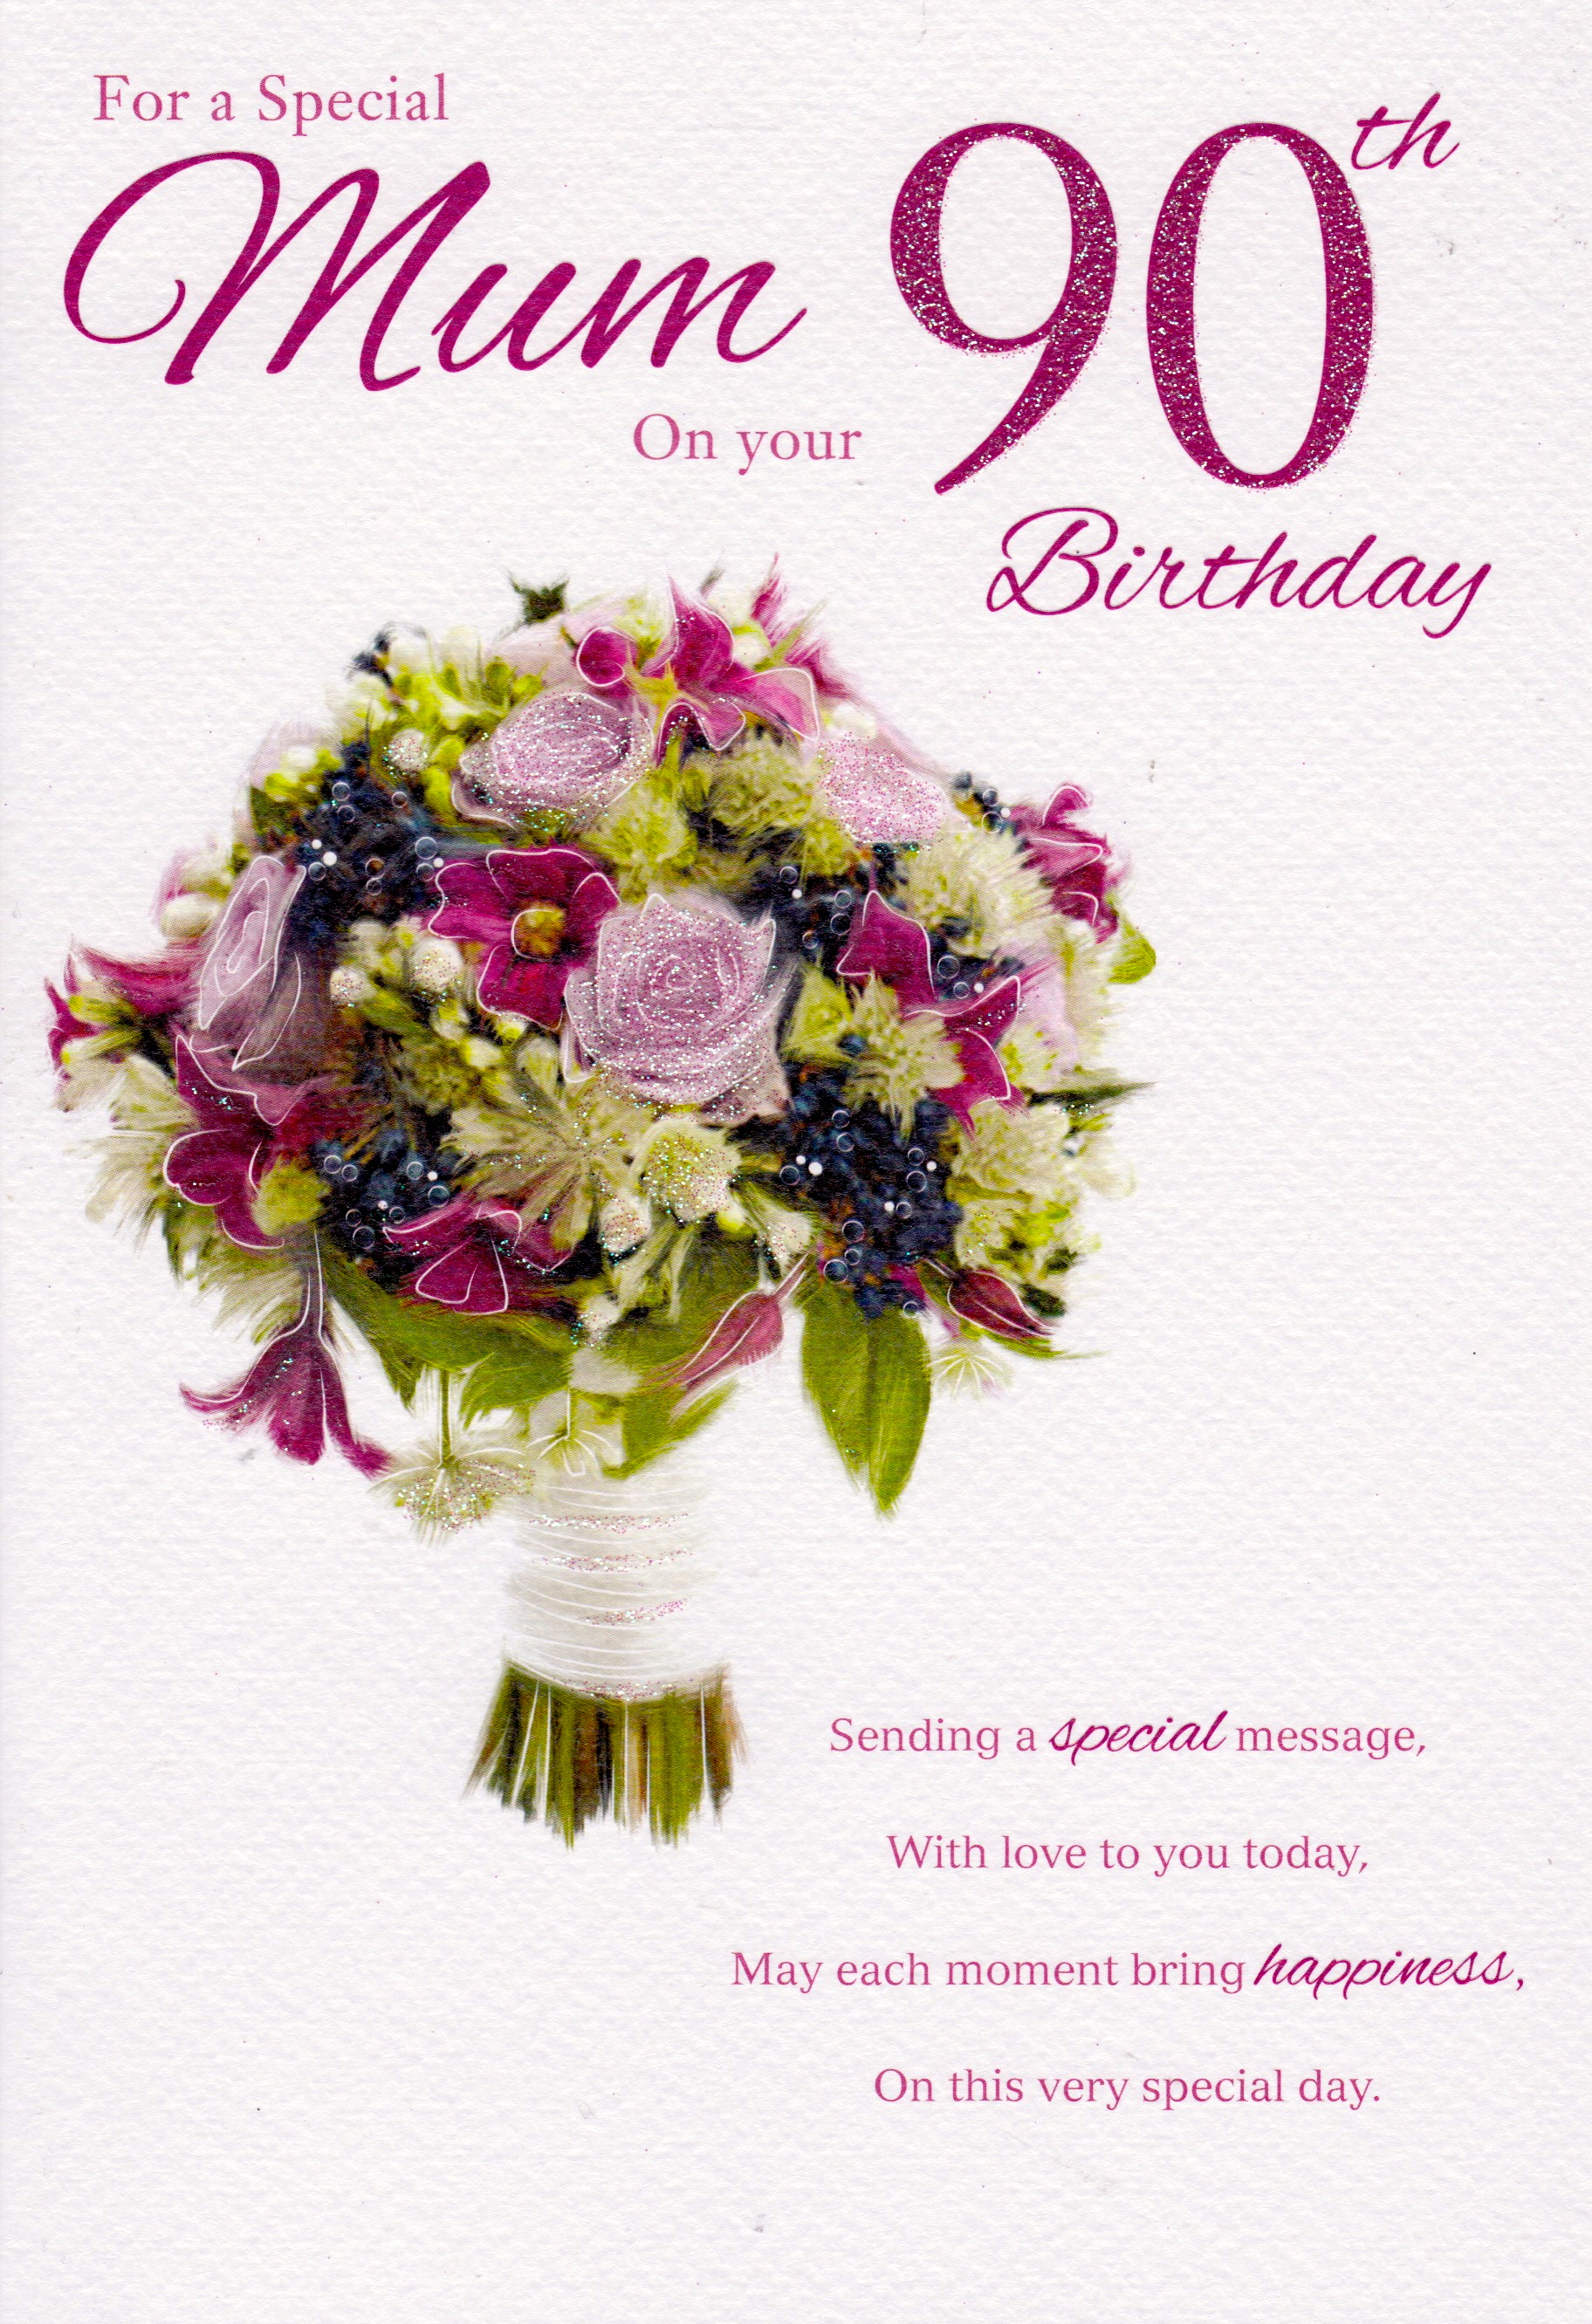 90th birthday greeting card messages ; Scan-261